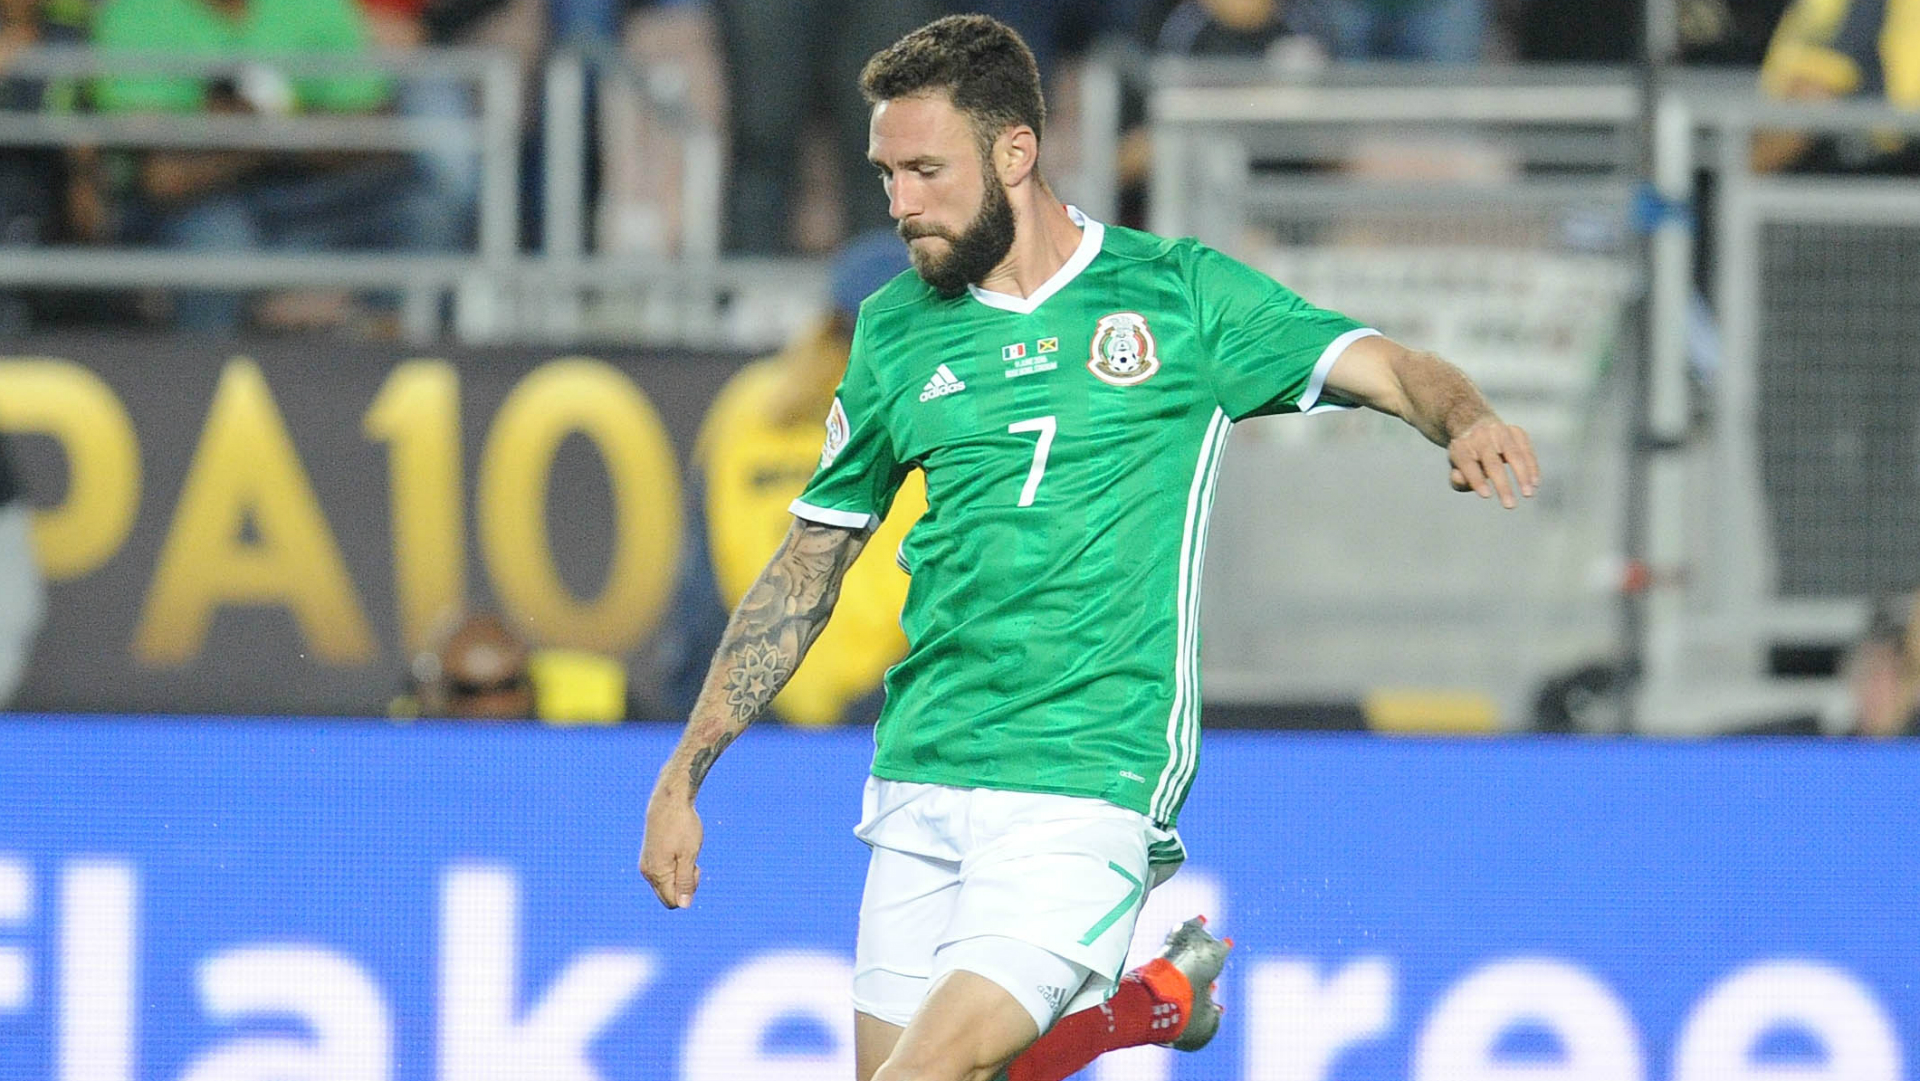 Watch Miguel Layun Nets First Cl Goal Of The Season Sporting News